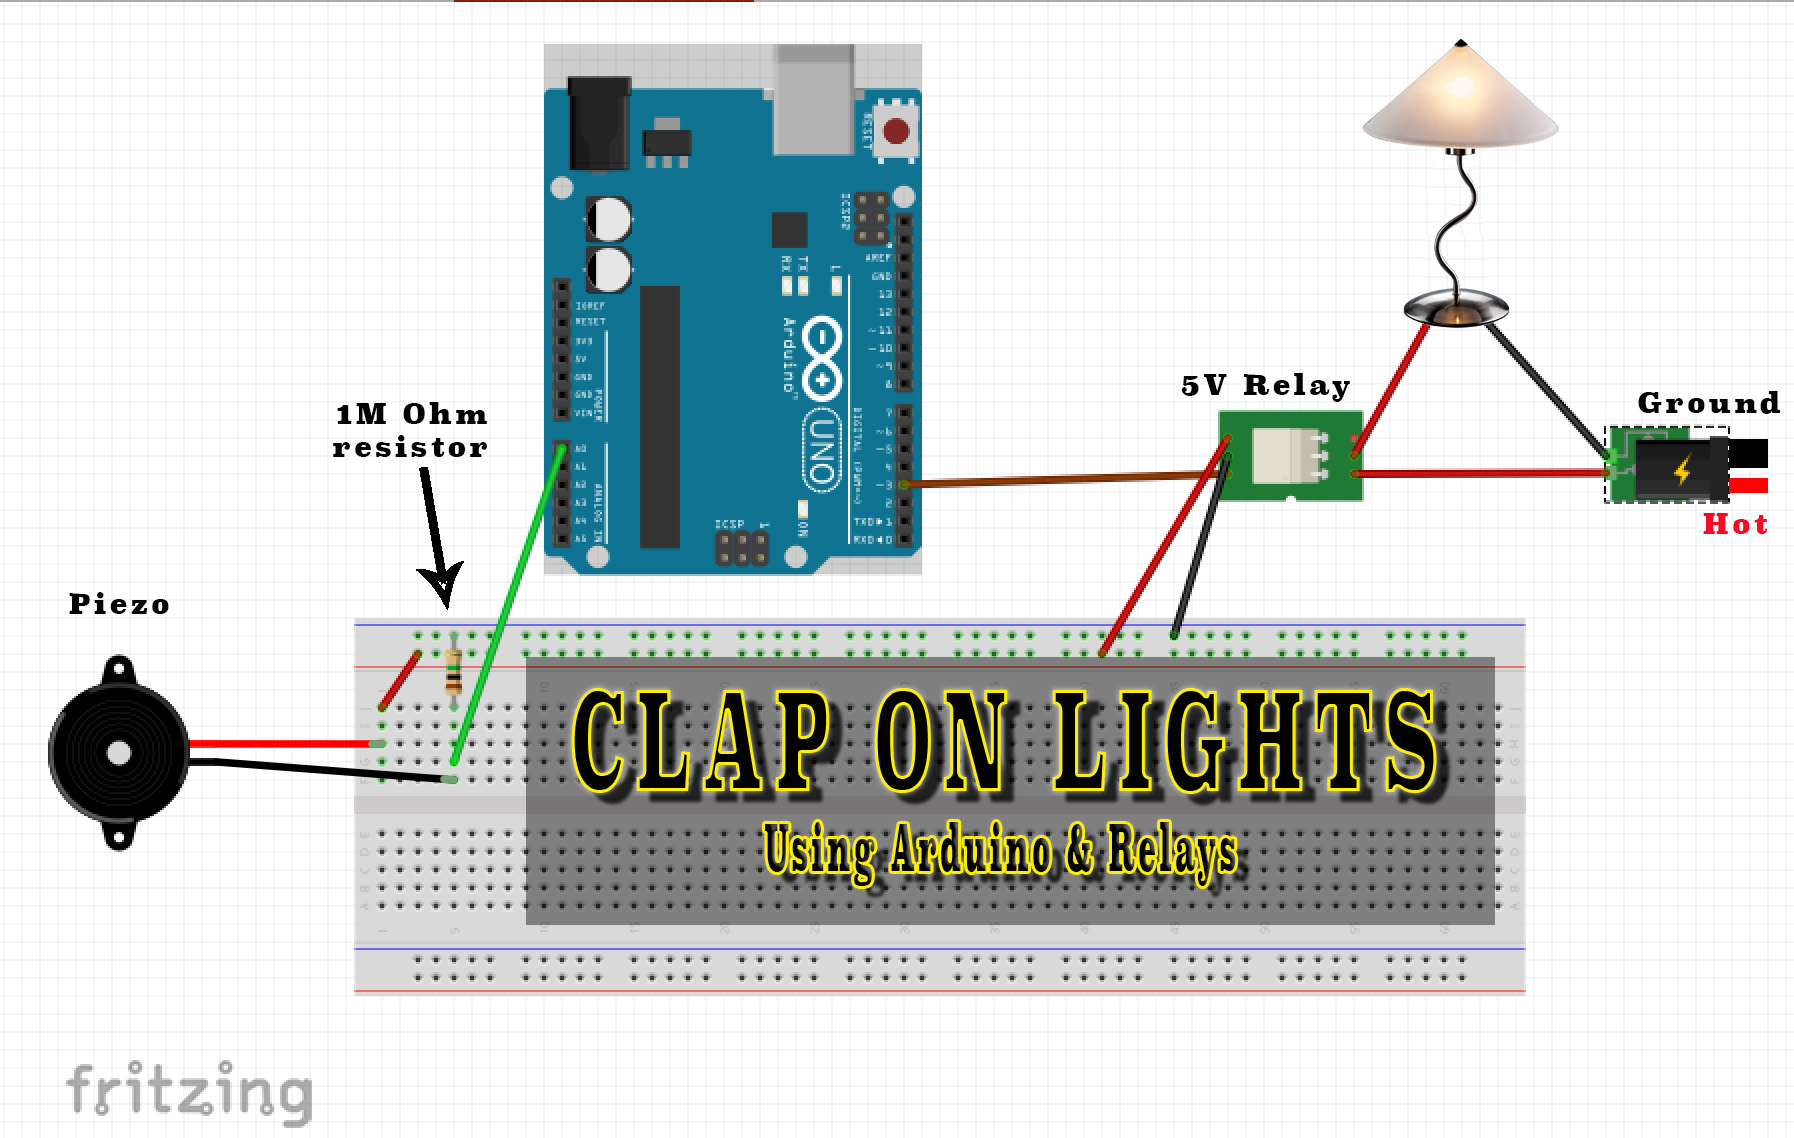 Josh Dodson Clap On Lights Arduino With 12v Relay Wiring Diagrams For Lighting